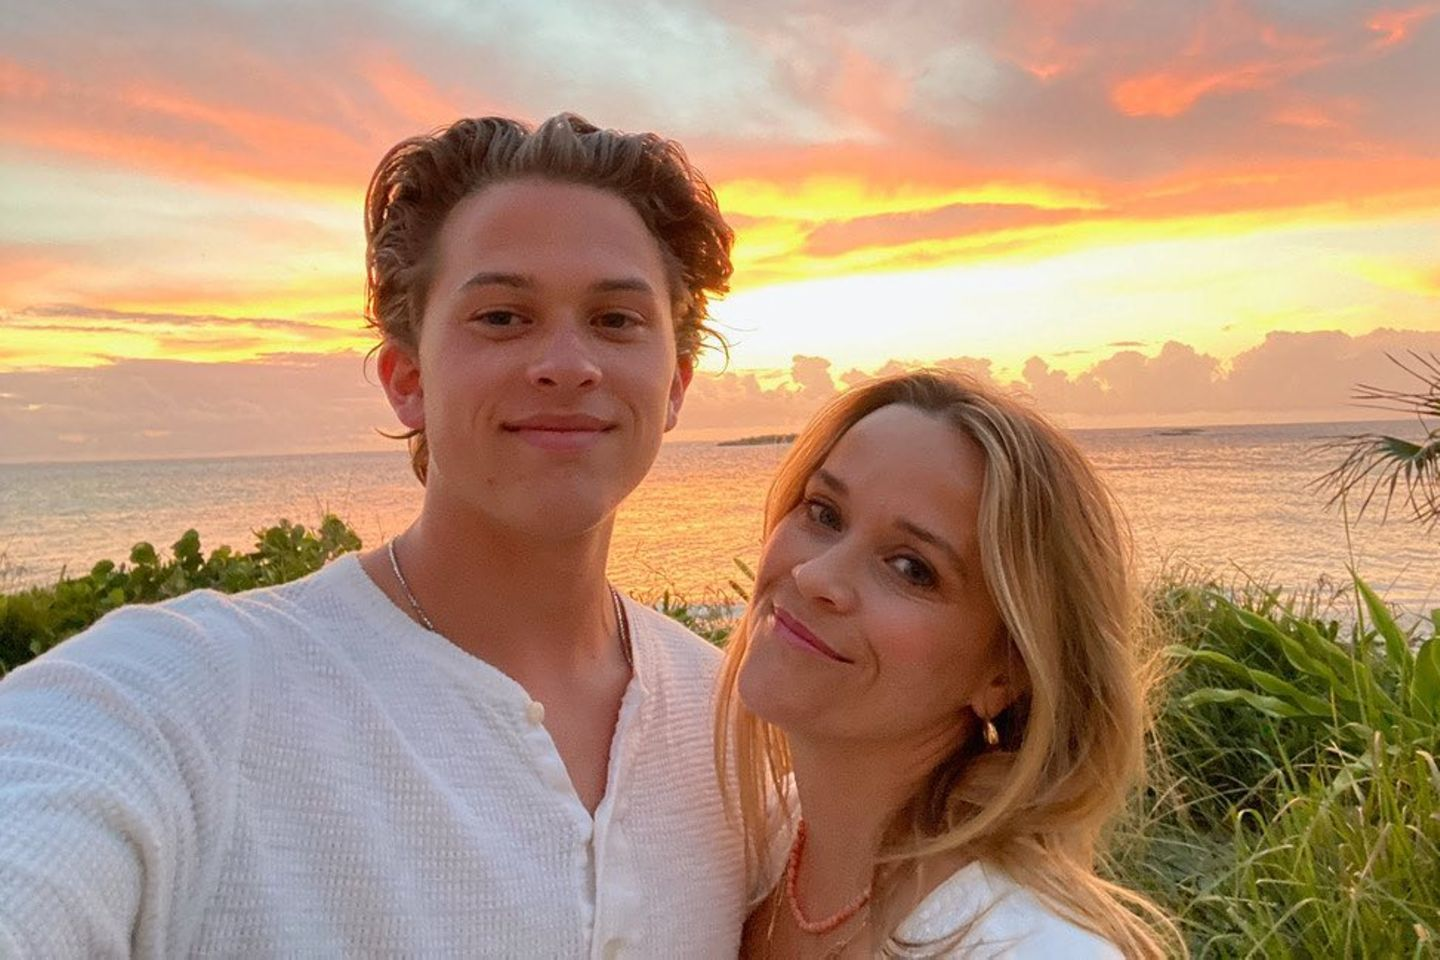 Deacon Phillippe mit seiner Mutter Reese Witherspoon